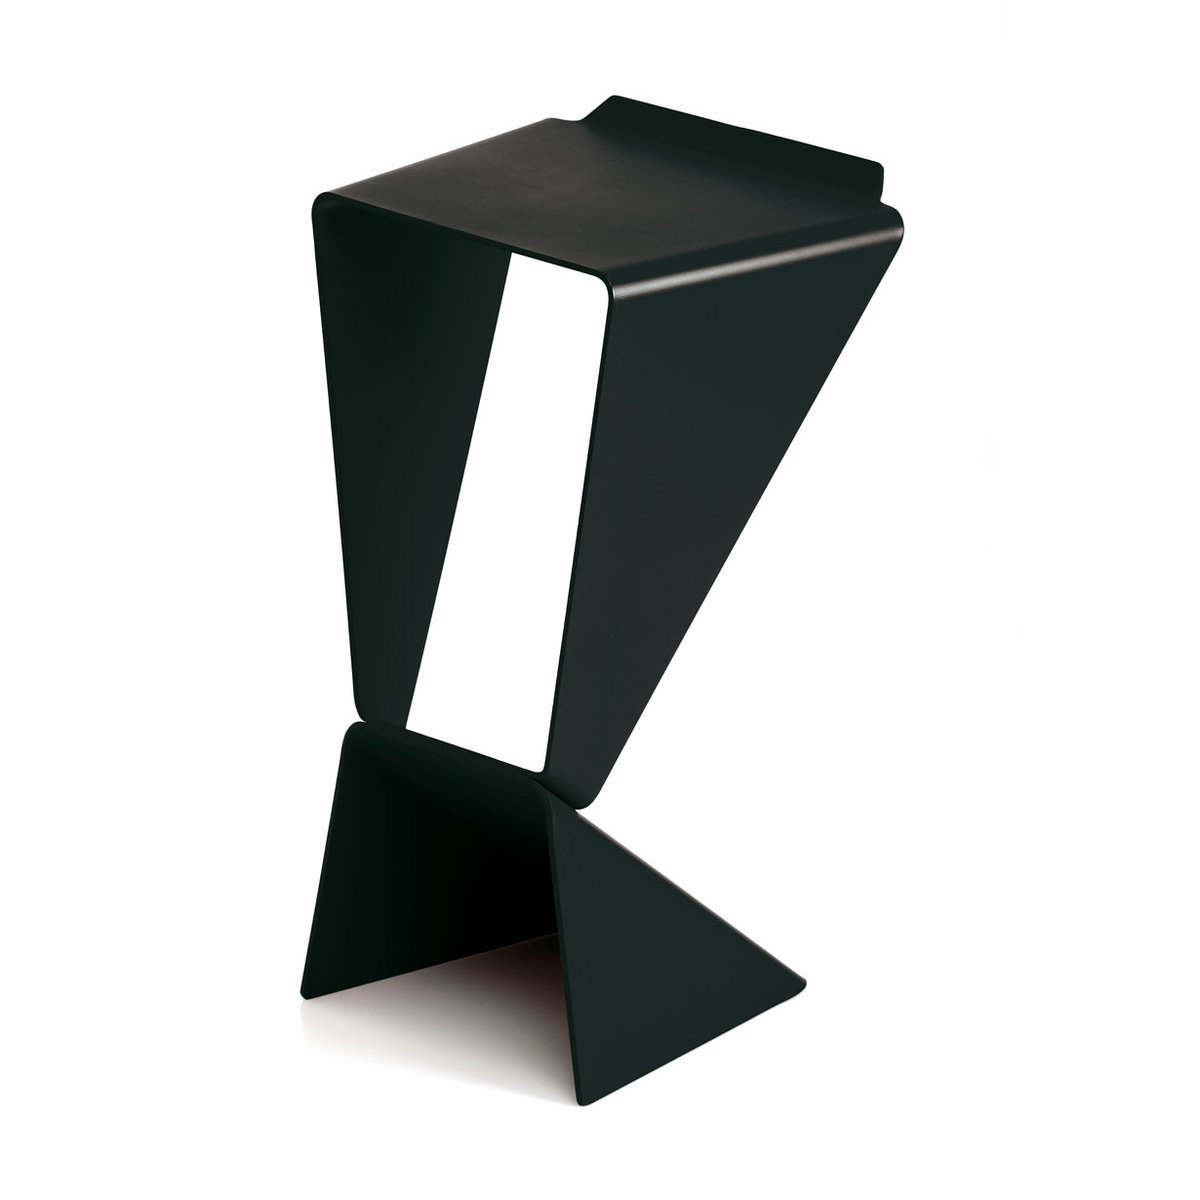 But Tabourets Hauts Tabouret Haut Icon By B Line Lovethesign